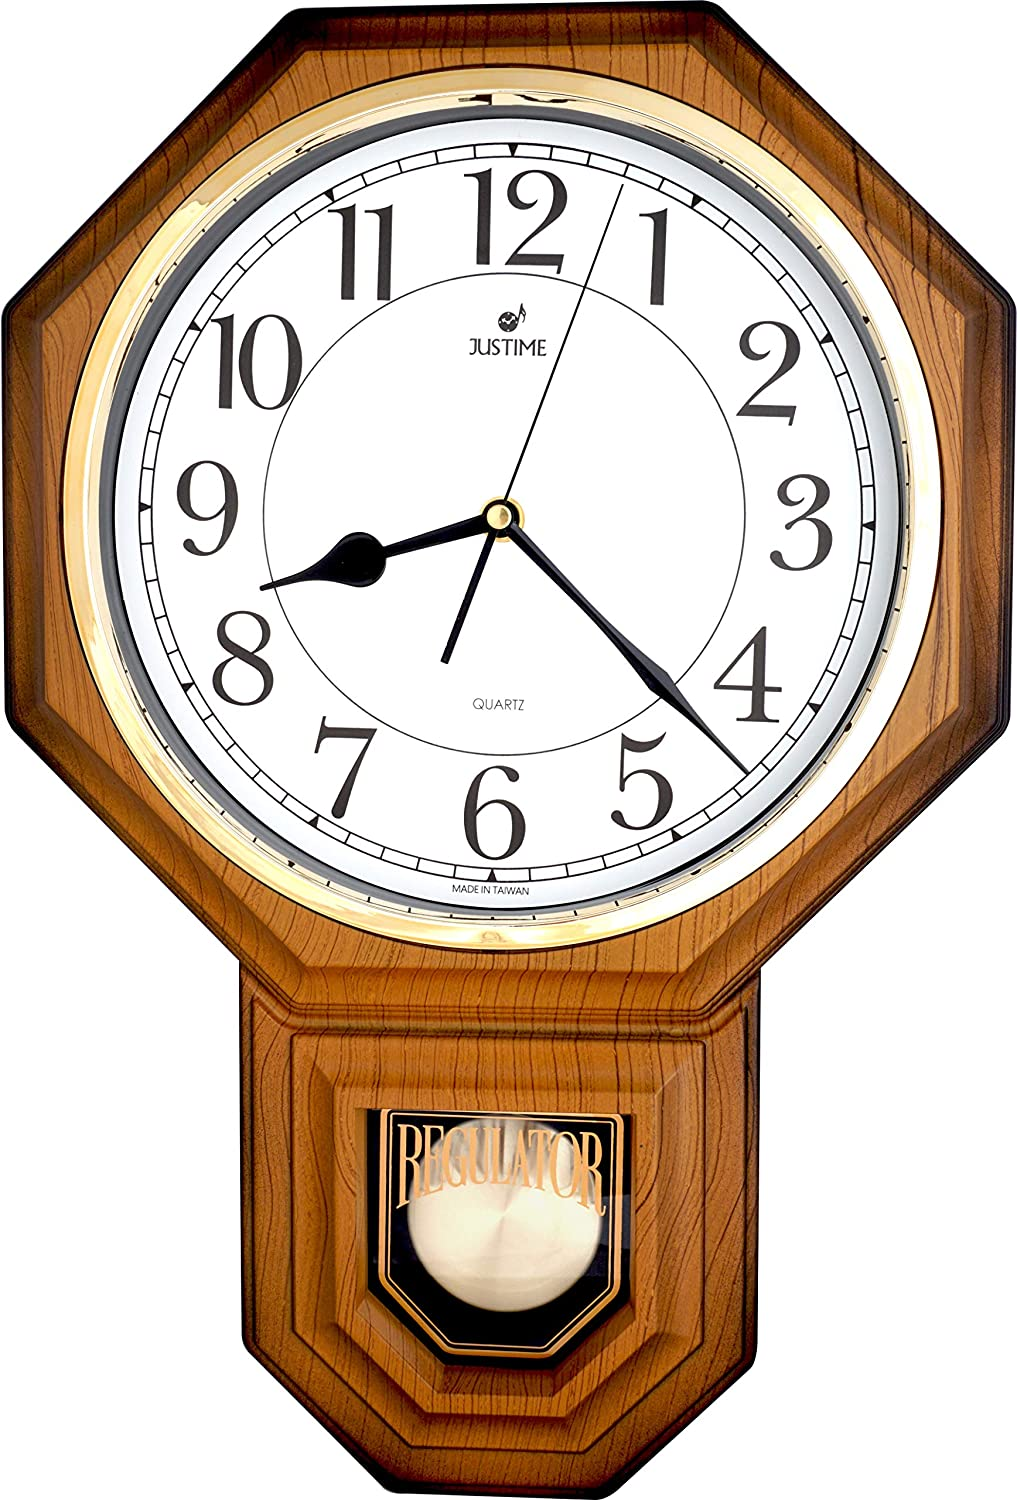 JUSTIME Traditional Schoolhouse Easy to Read Pendulum Plastic Wall Clock Chimes Every Hour with Westminster Melody Made in Taiwan, 4AA Batteries Included (PP0258-WLW Light Wood Grain)